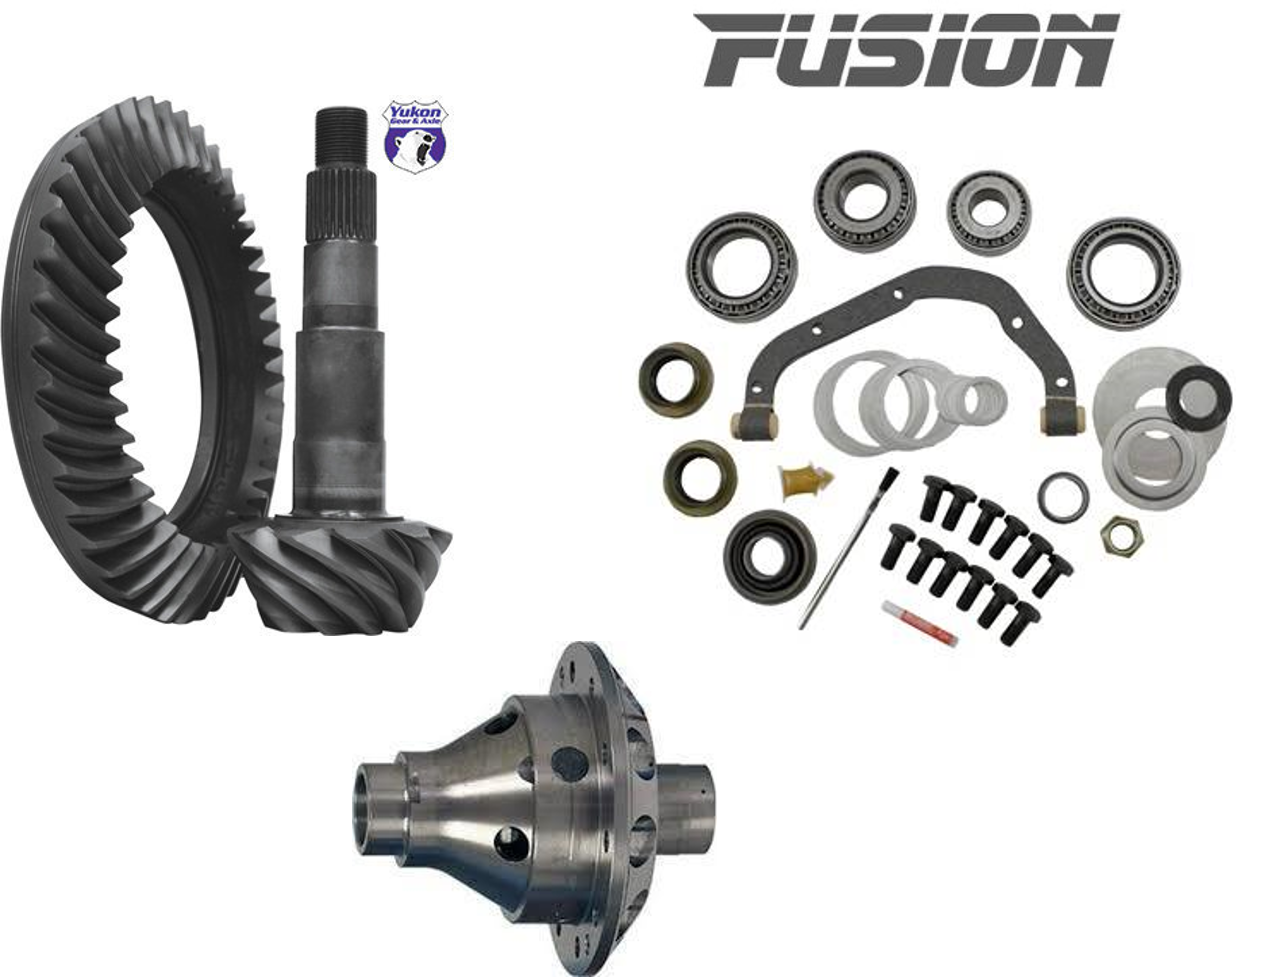 99-04 Ford Sterling 10.5 Traction, Gears, Master Install Kit